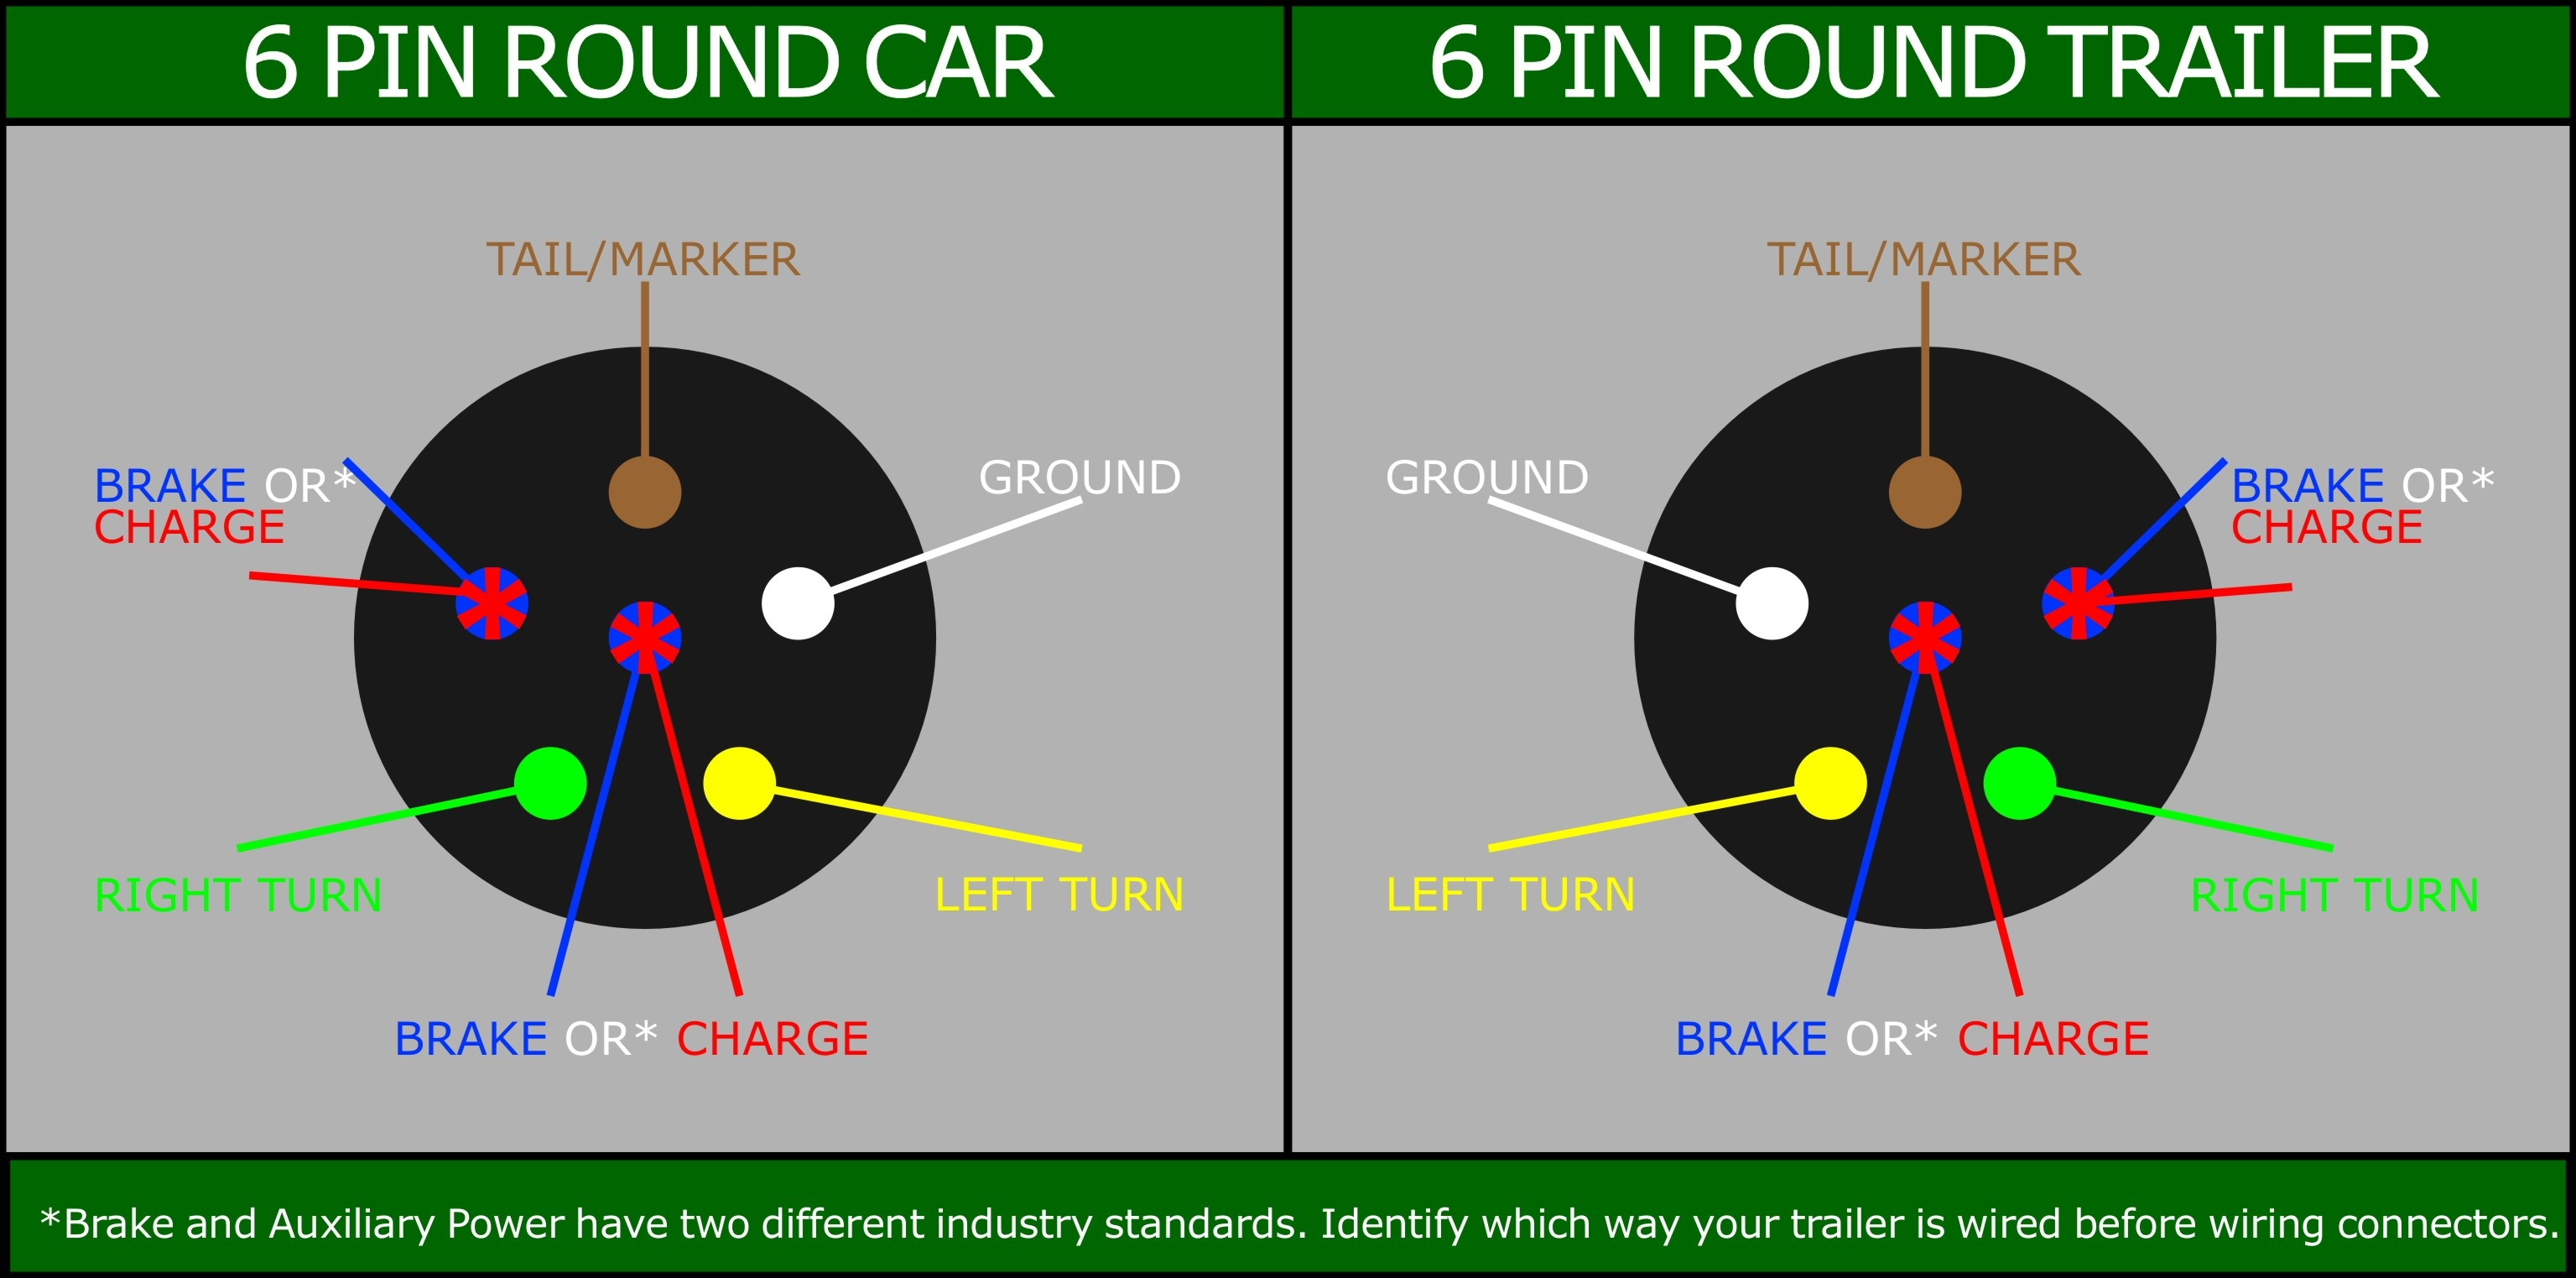 6 Round Trailer Wiring - Data Wiring Diagram Detailed - 6 Round Trailer Wiring Diagram